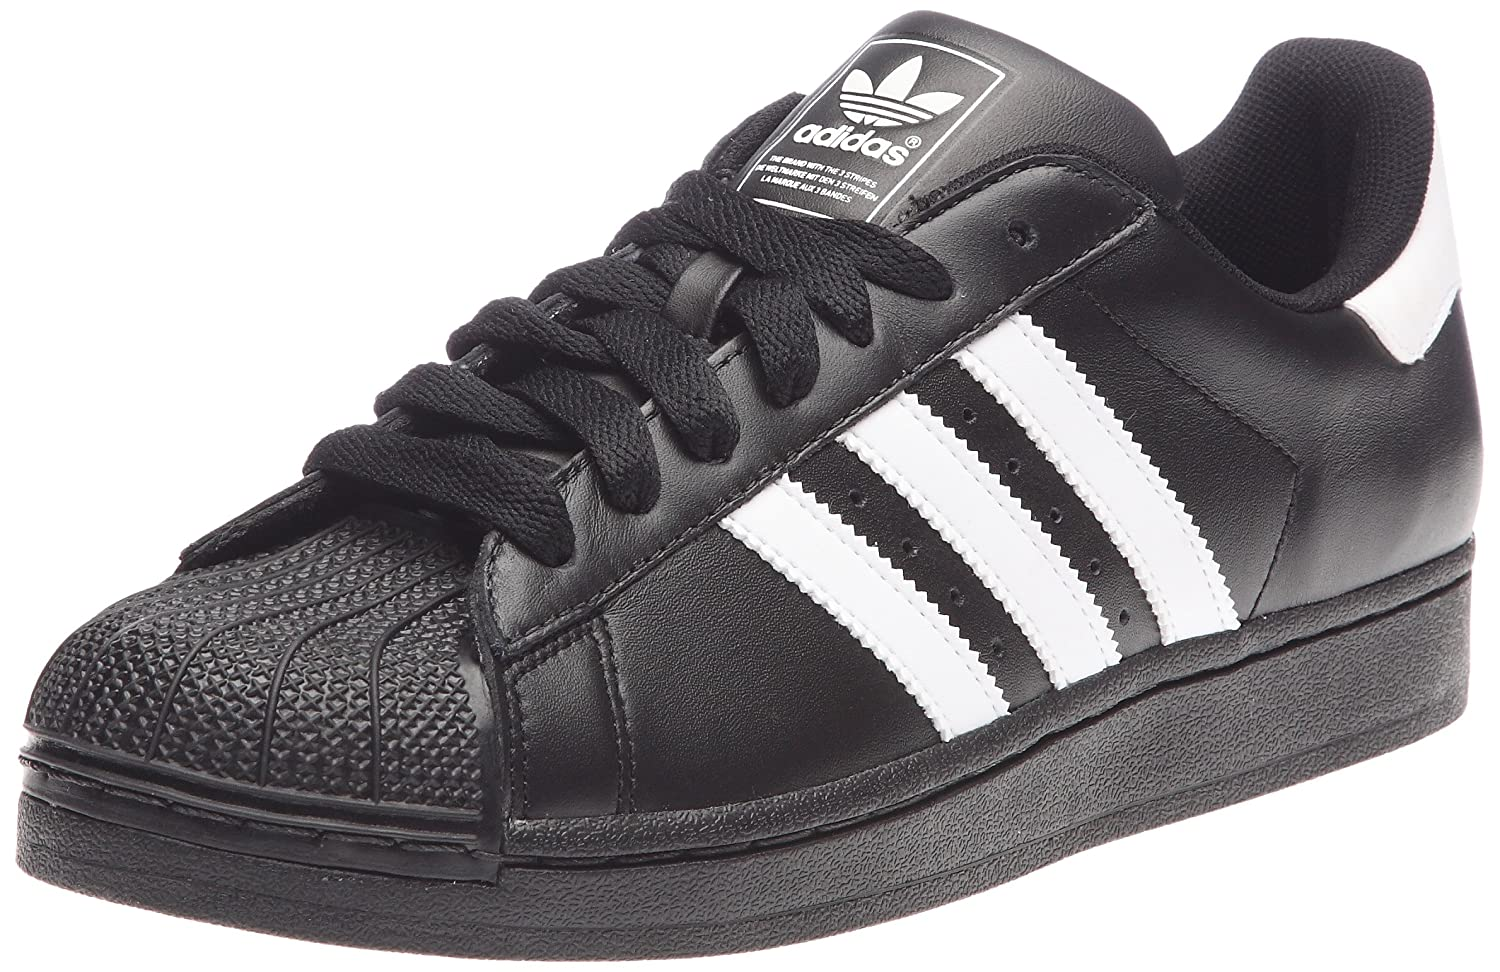 newest collection f8937 14d60 Amazon.com   adidas Original Superstar II Trainer Mens   Fashion Sneakers